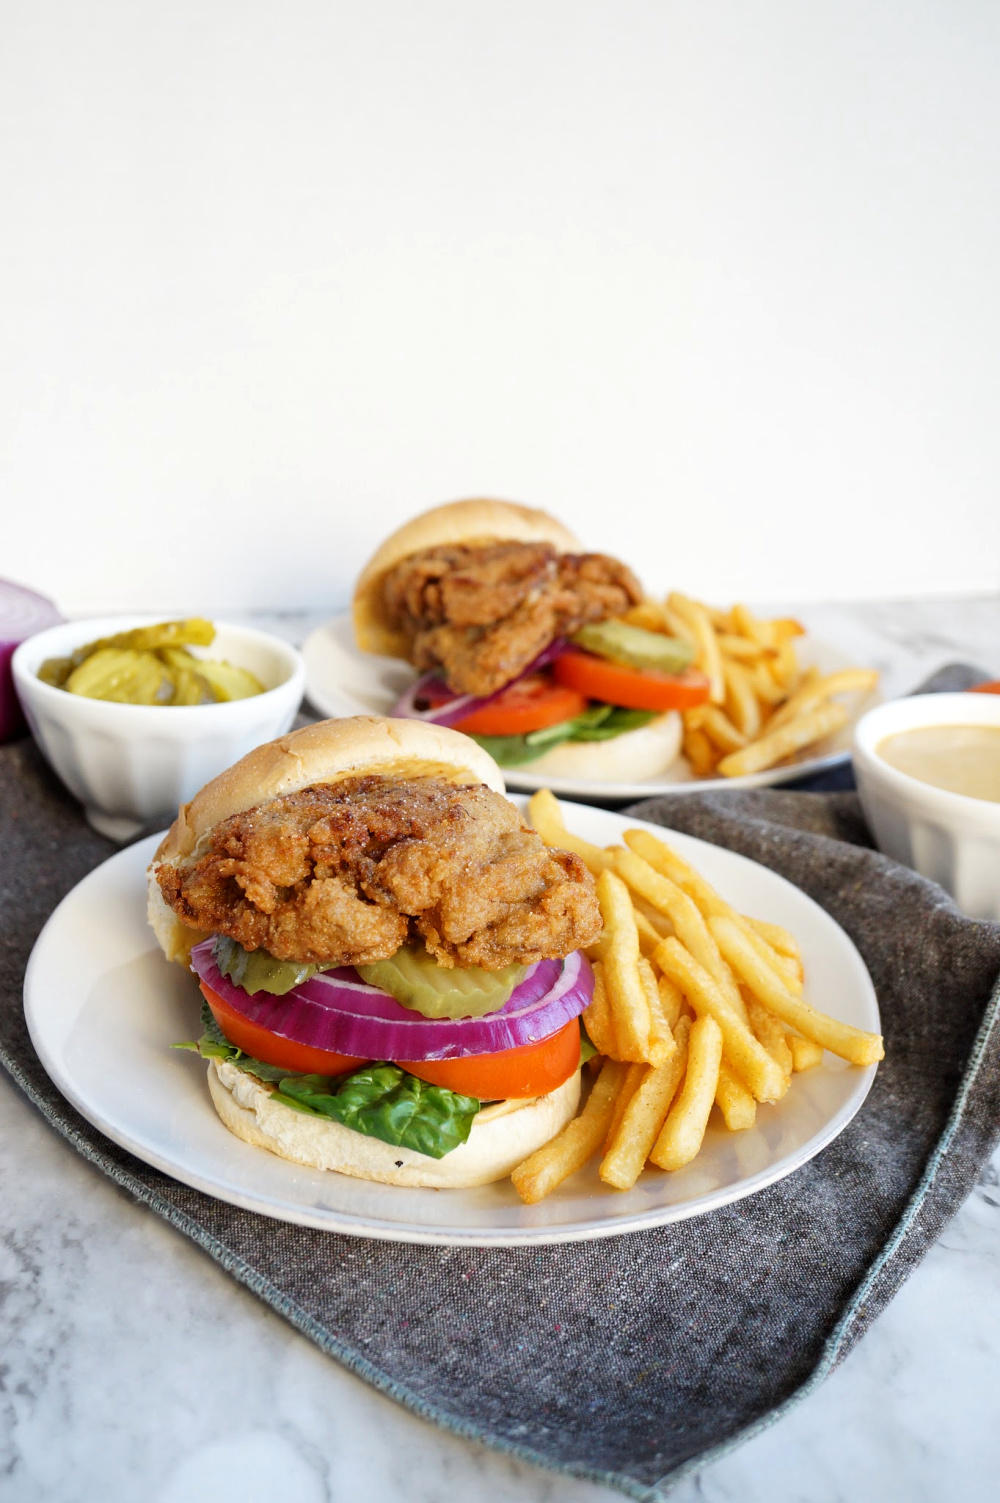 fried chick'n oyster mushroom sandwich on plate with fries